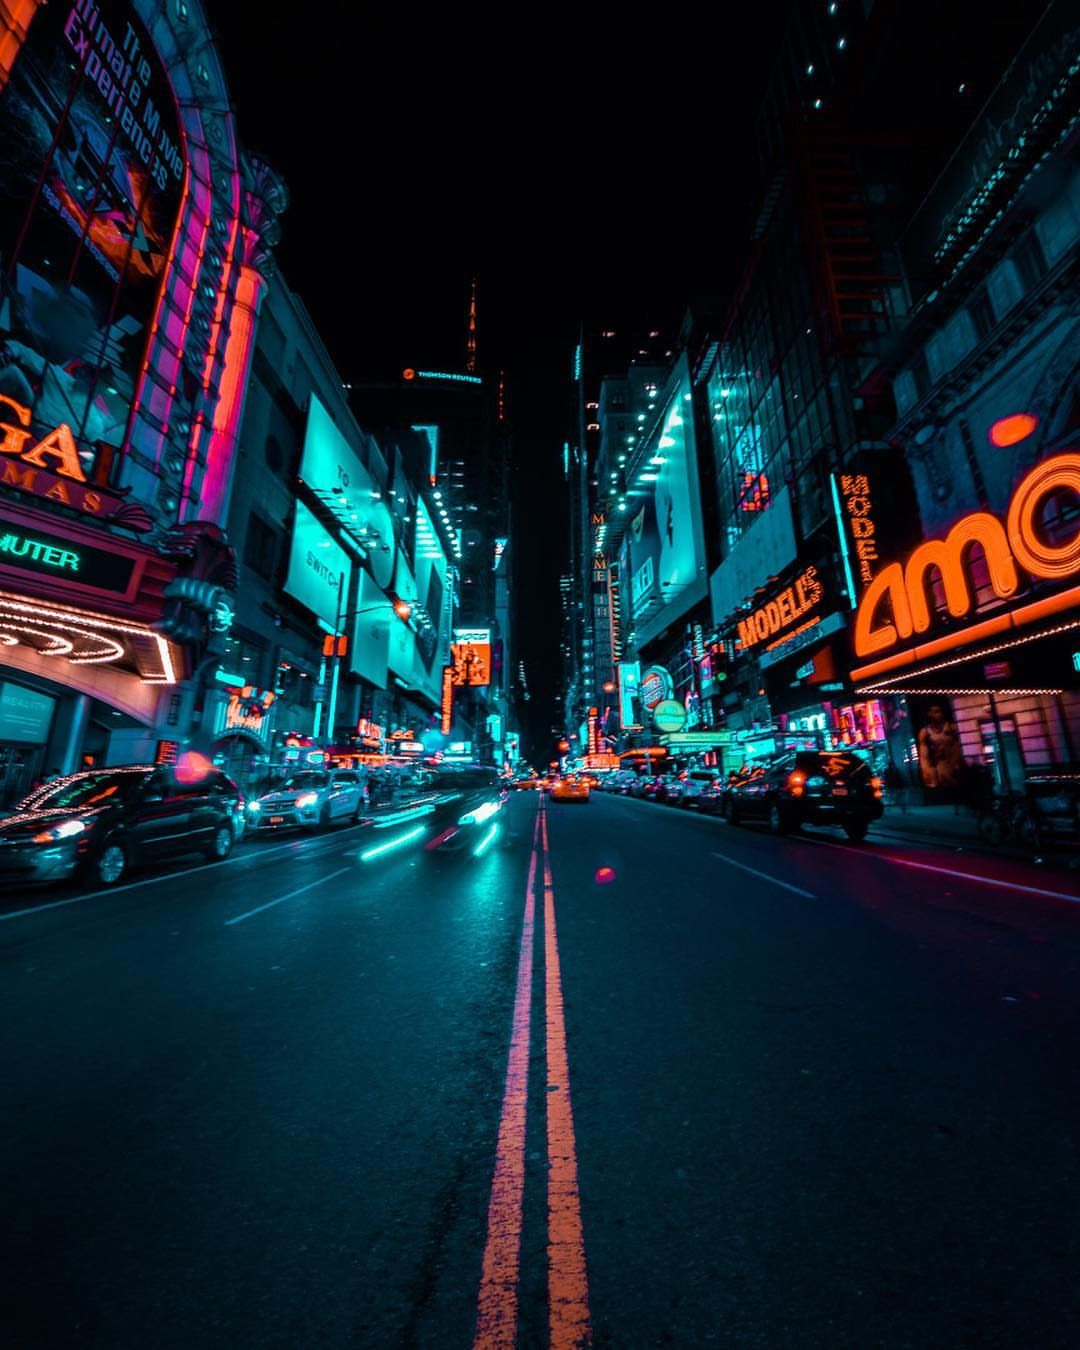 Urban Night Photography In New York City By Charles Ivan